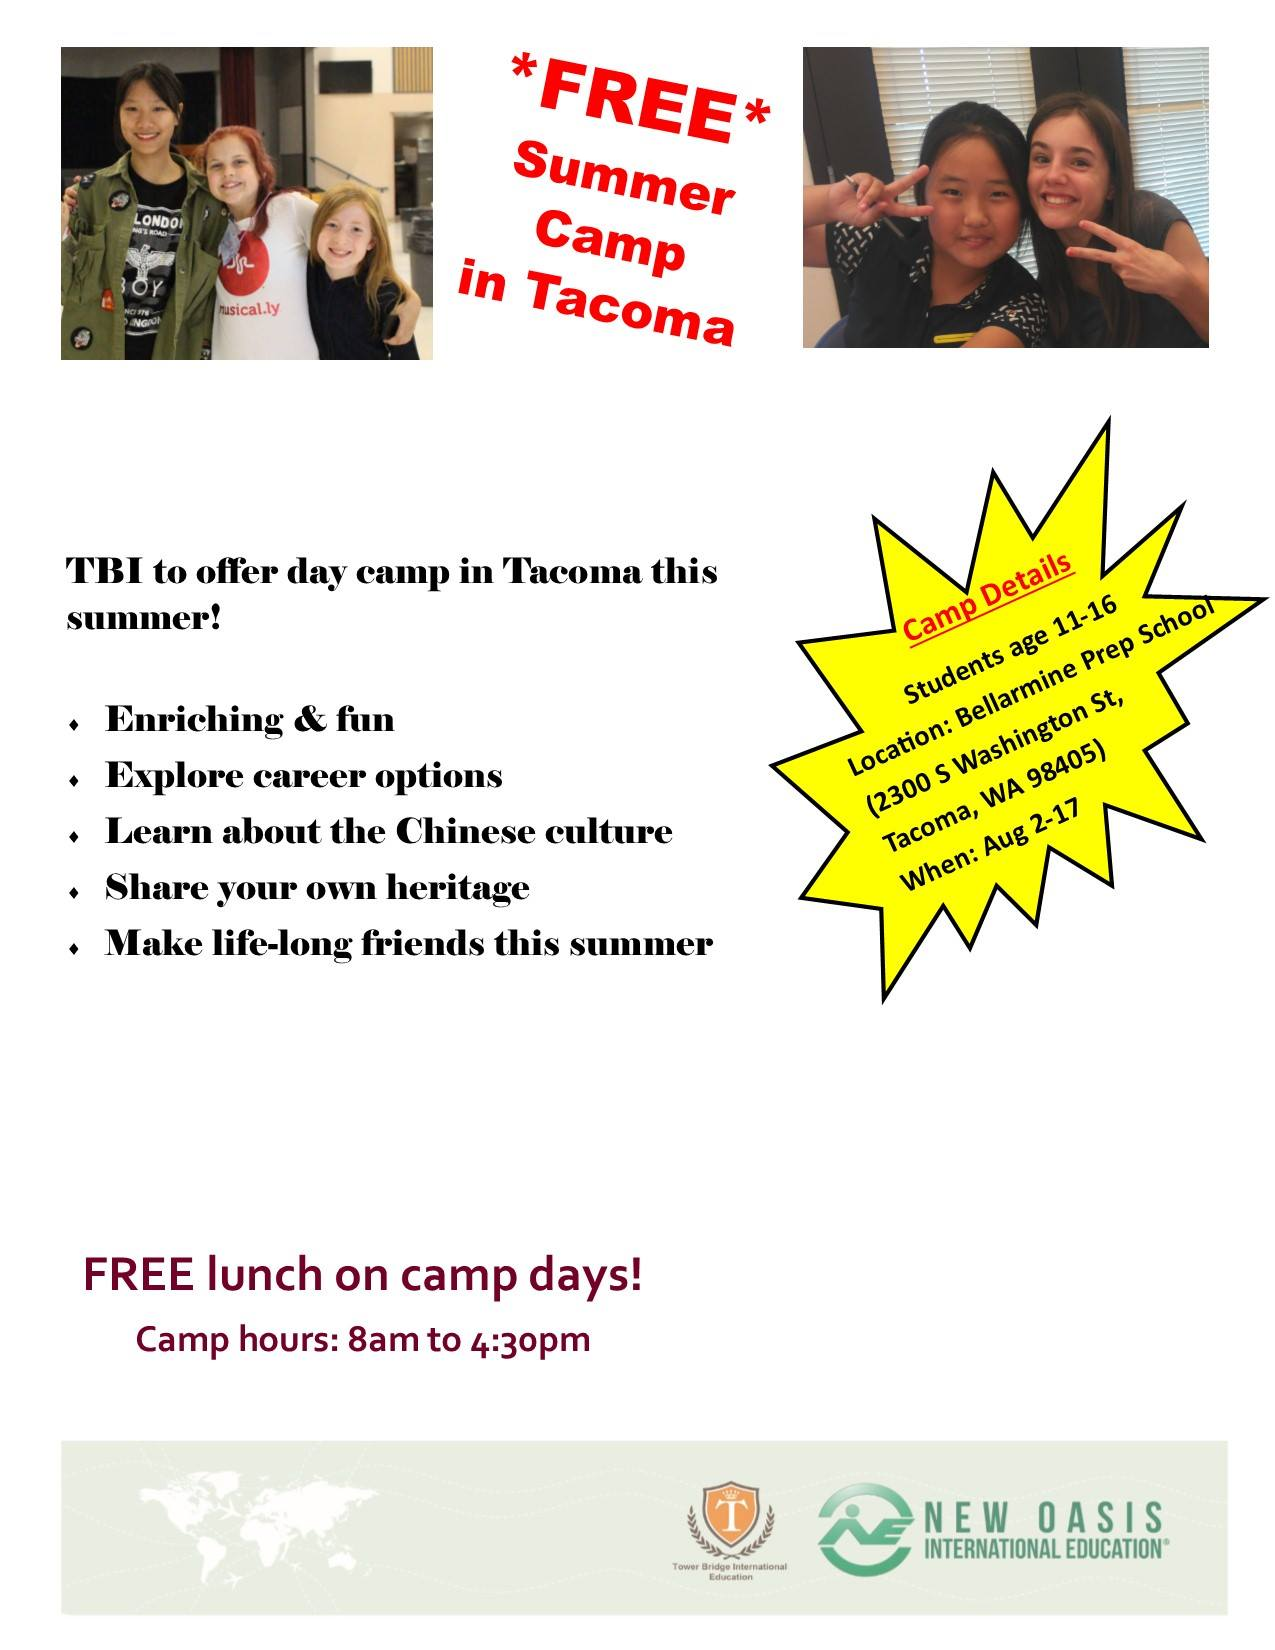 Free Tacoma Summer Camp for Students